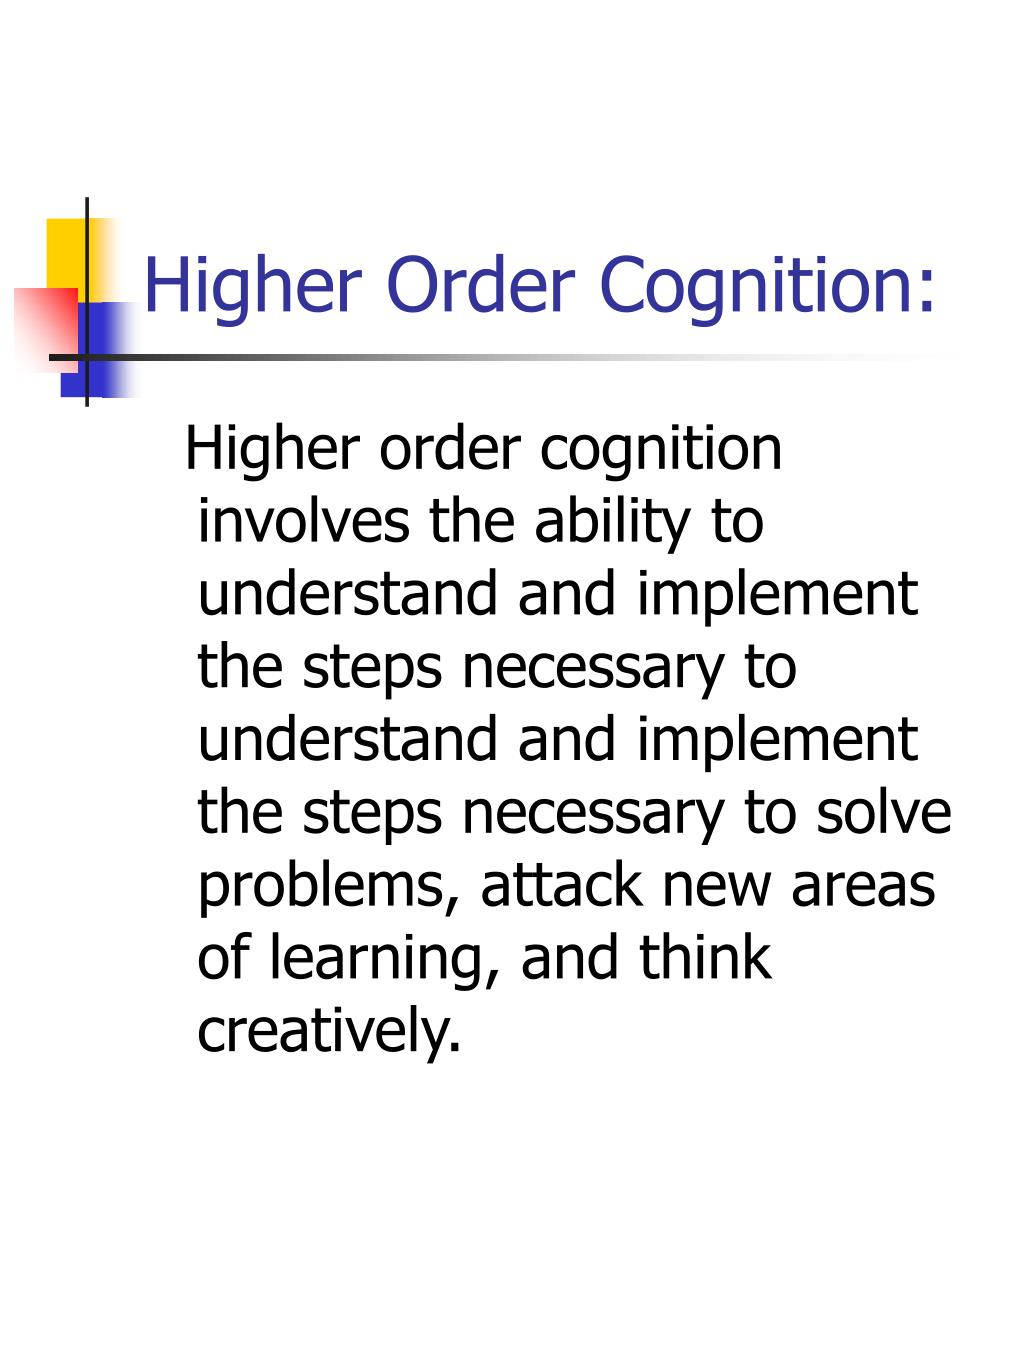 Higher Order Cognition: